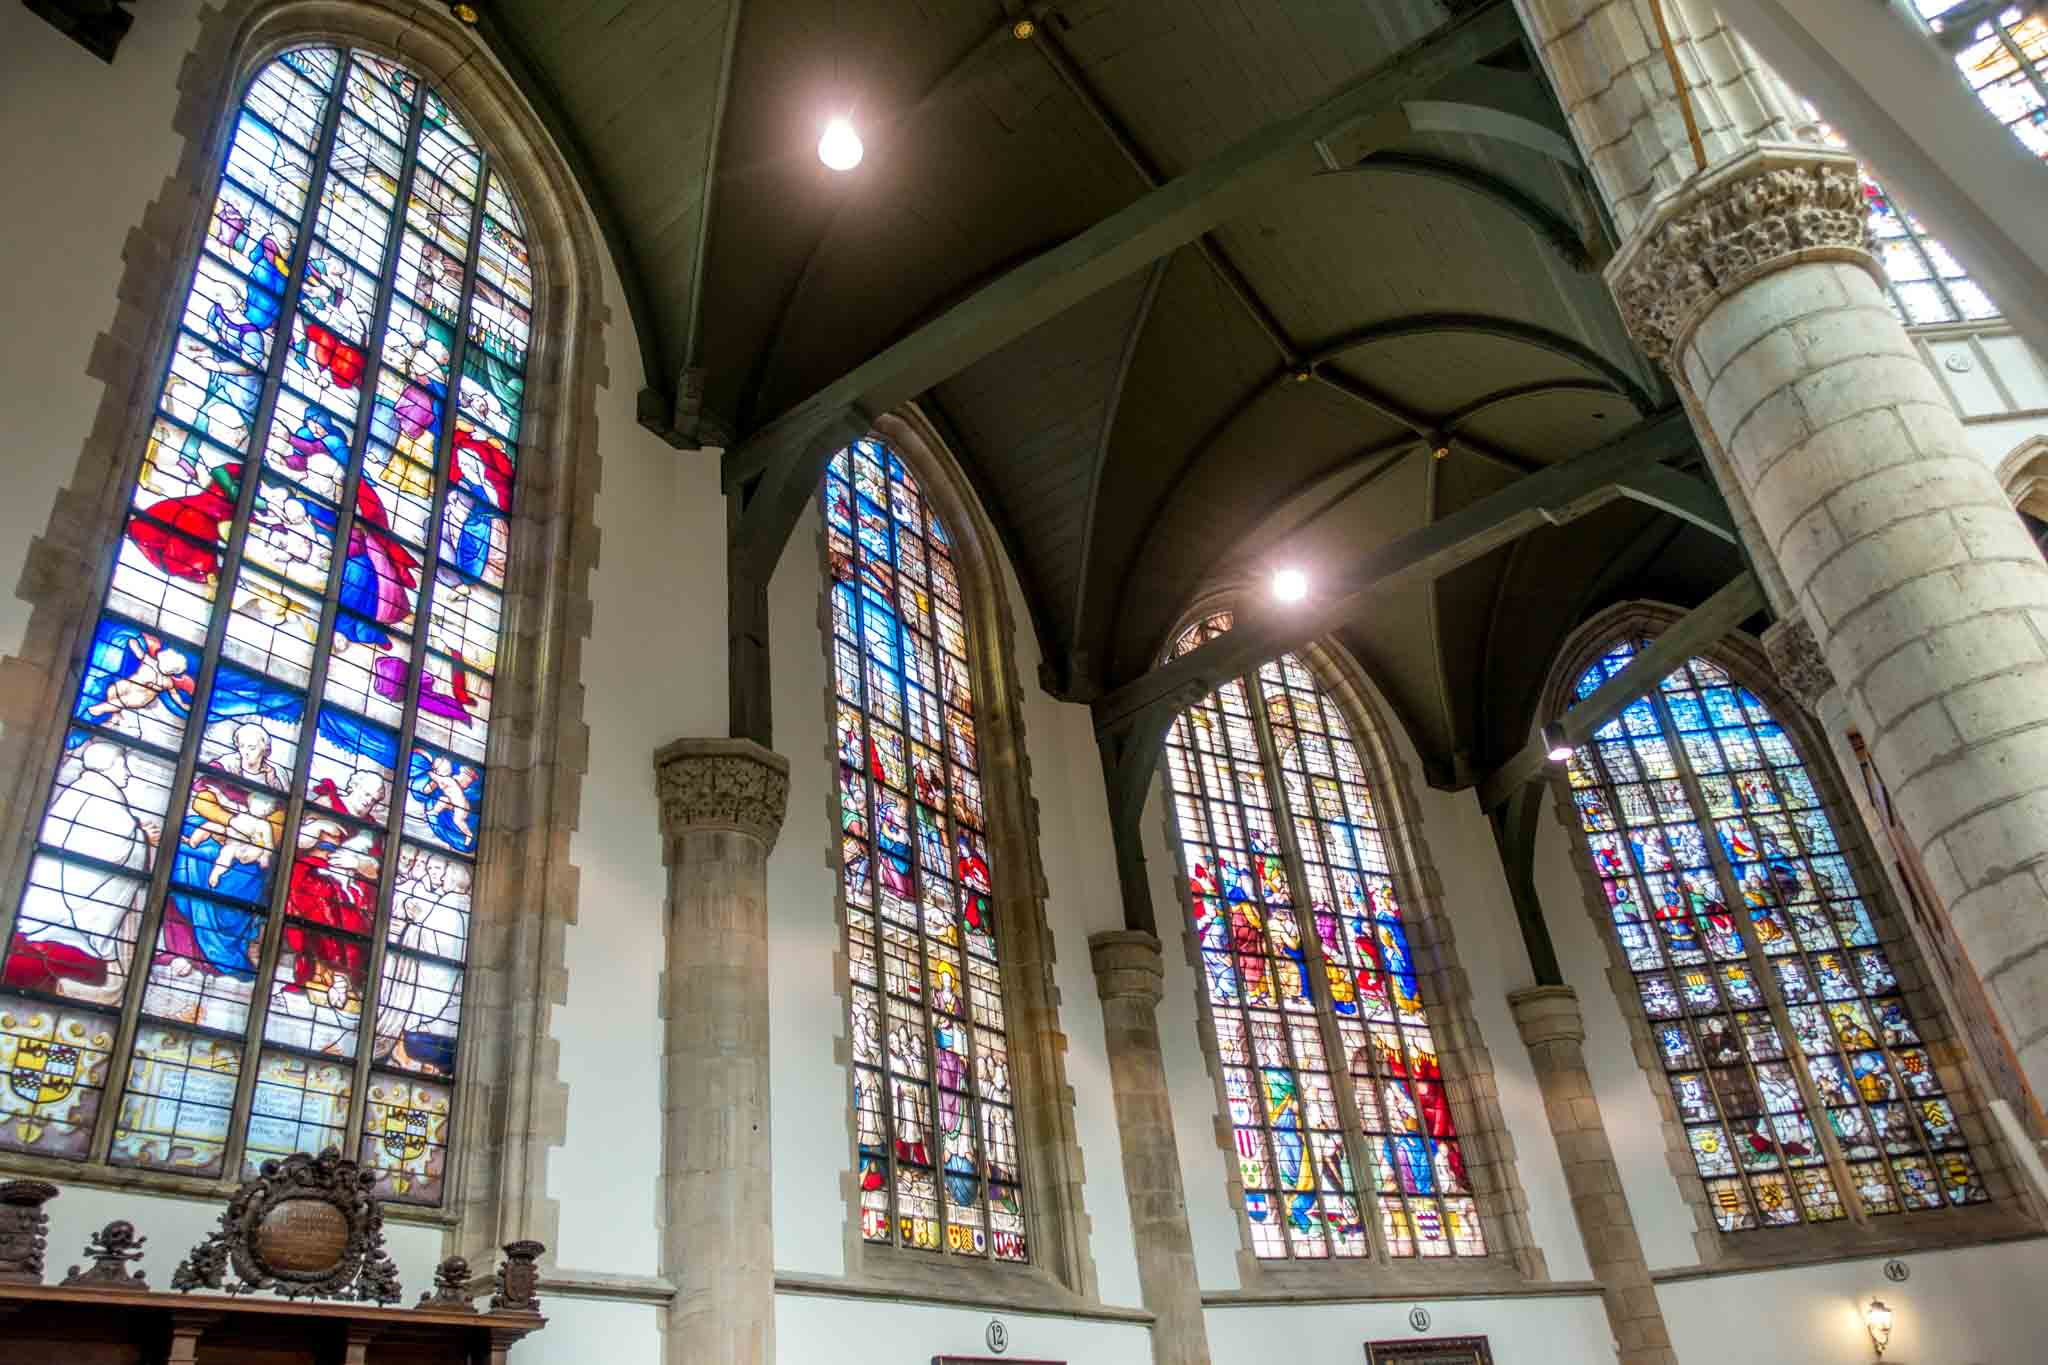 The beautiful stained glass windows of Sint Janskerk in Gouda have landed the church on the list of top Dutch heritage sites| Sint Jan Gouda, Netherlands